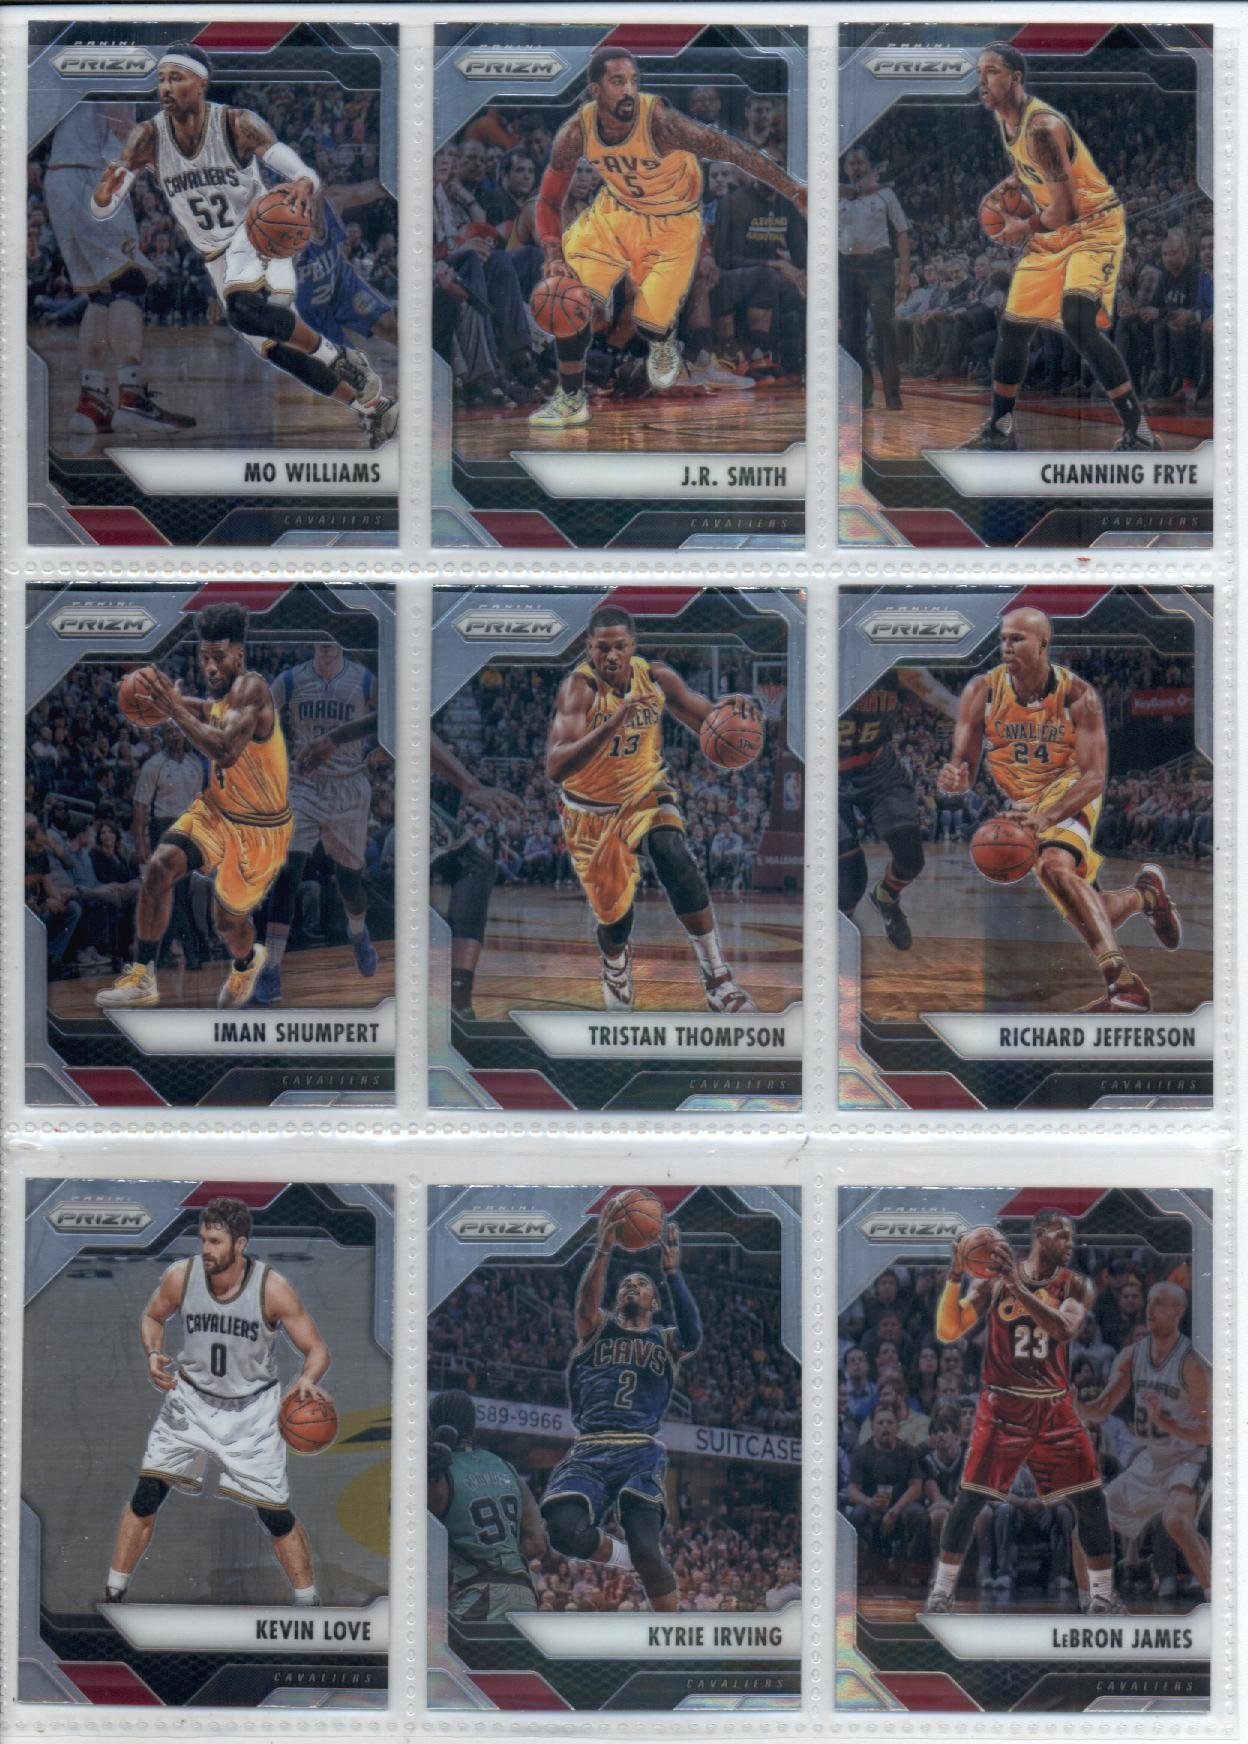 2016-17 Panini Prizm Veteran Cleveland Cavaliers Team Set of 9 Cards SEALED in Protective Snap Case which includes: LeBron James(#31), Kyrie Irving(#32), Kevin Love(#34), Richard Jefferson(#35), Tristan Thompson(#36), Iman Shumpert(#37), Channing Frye(#38), J.R. Smith(#39), Mo Williams(#40)